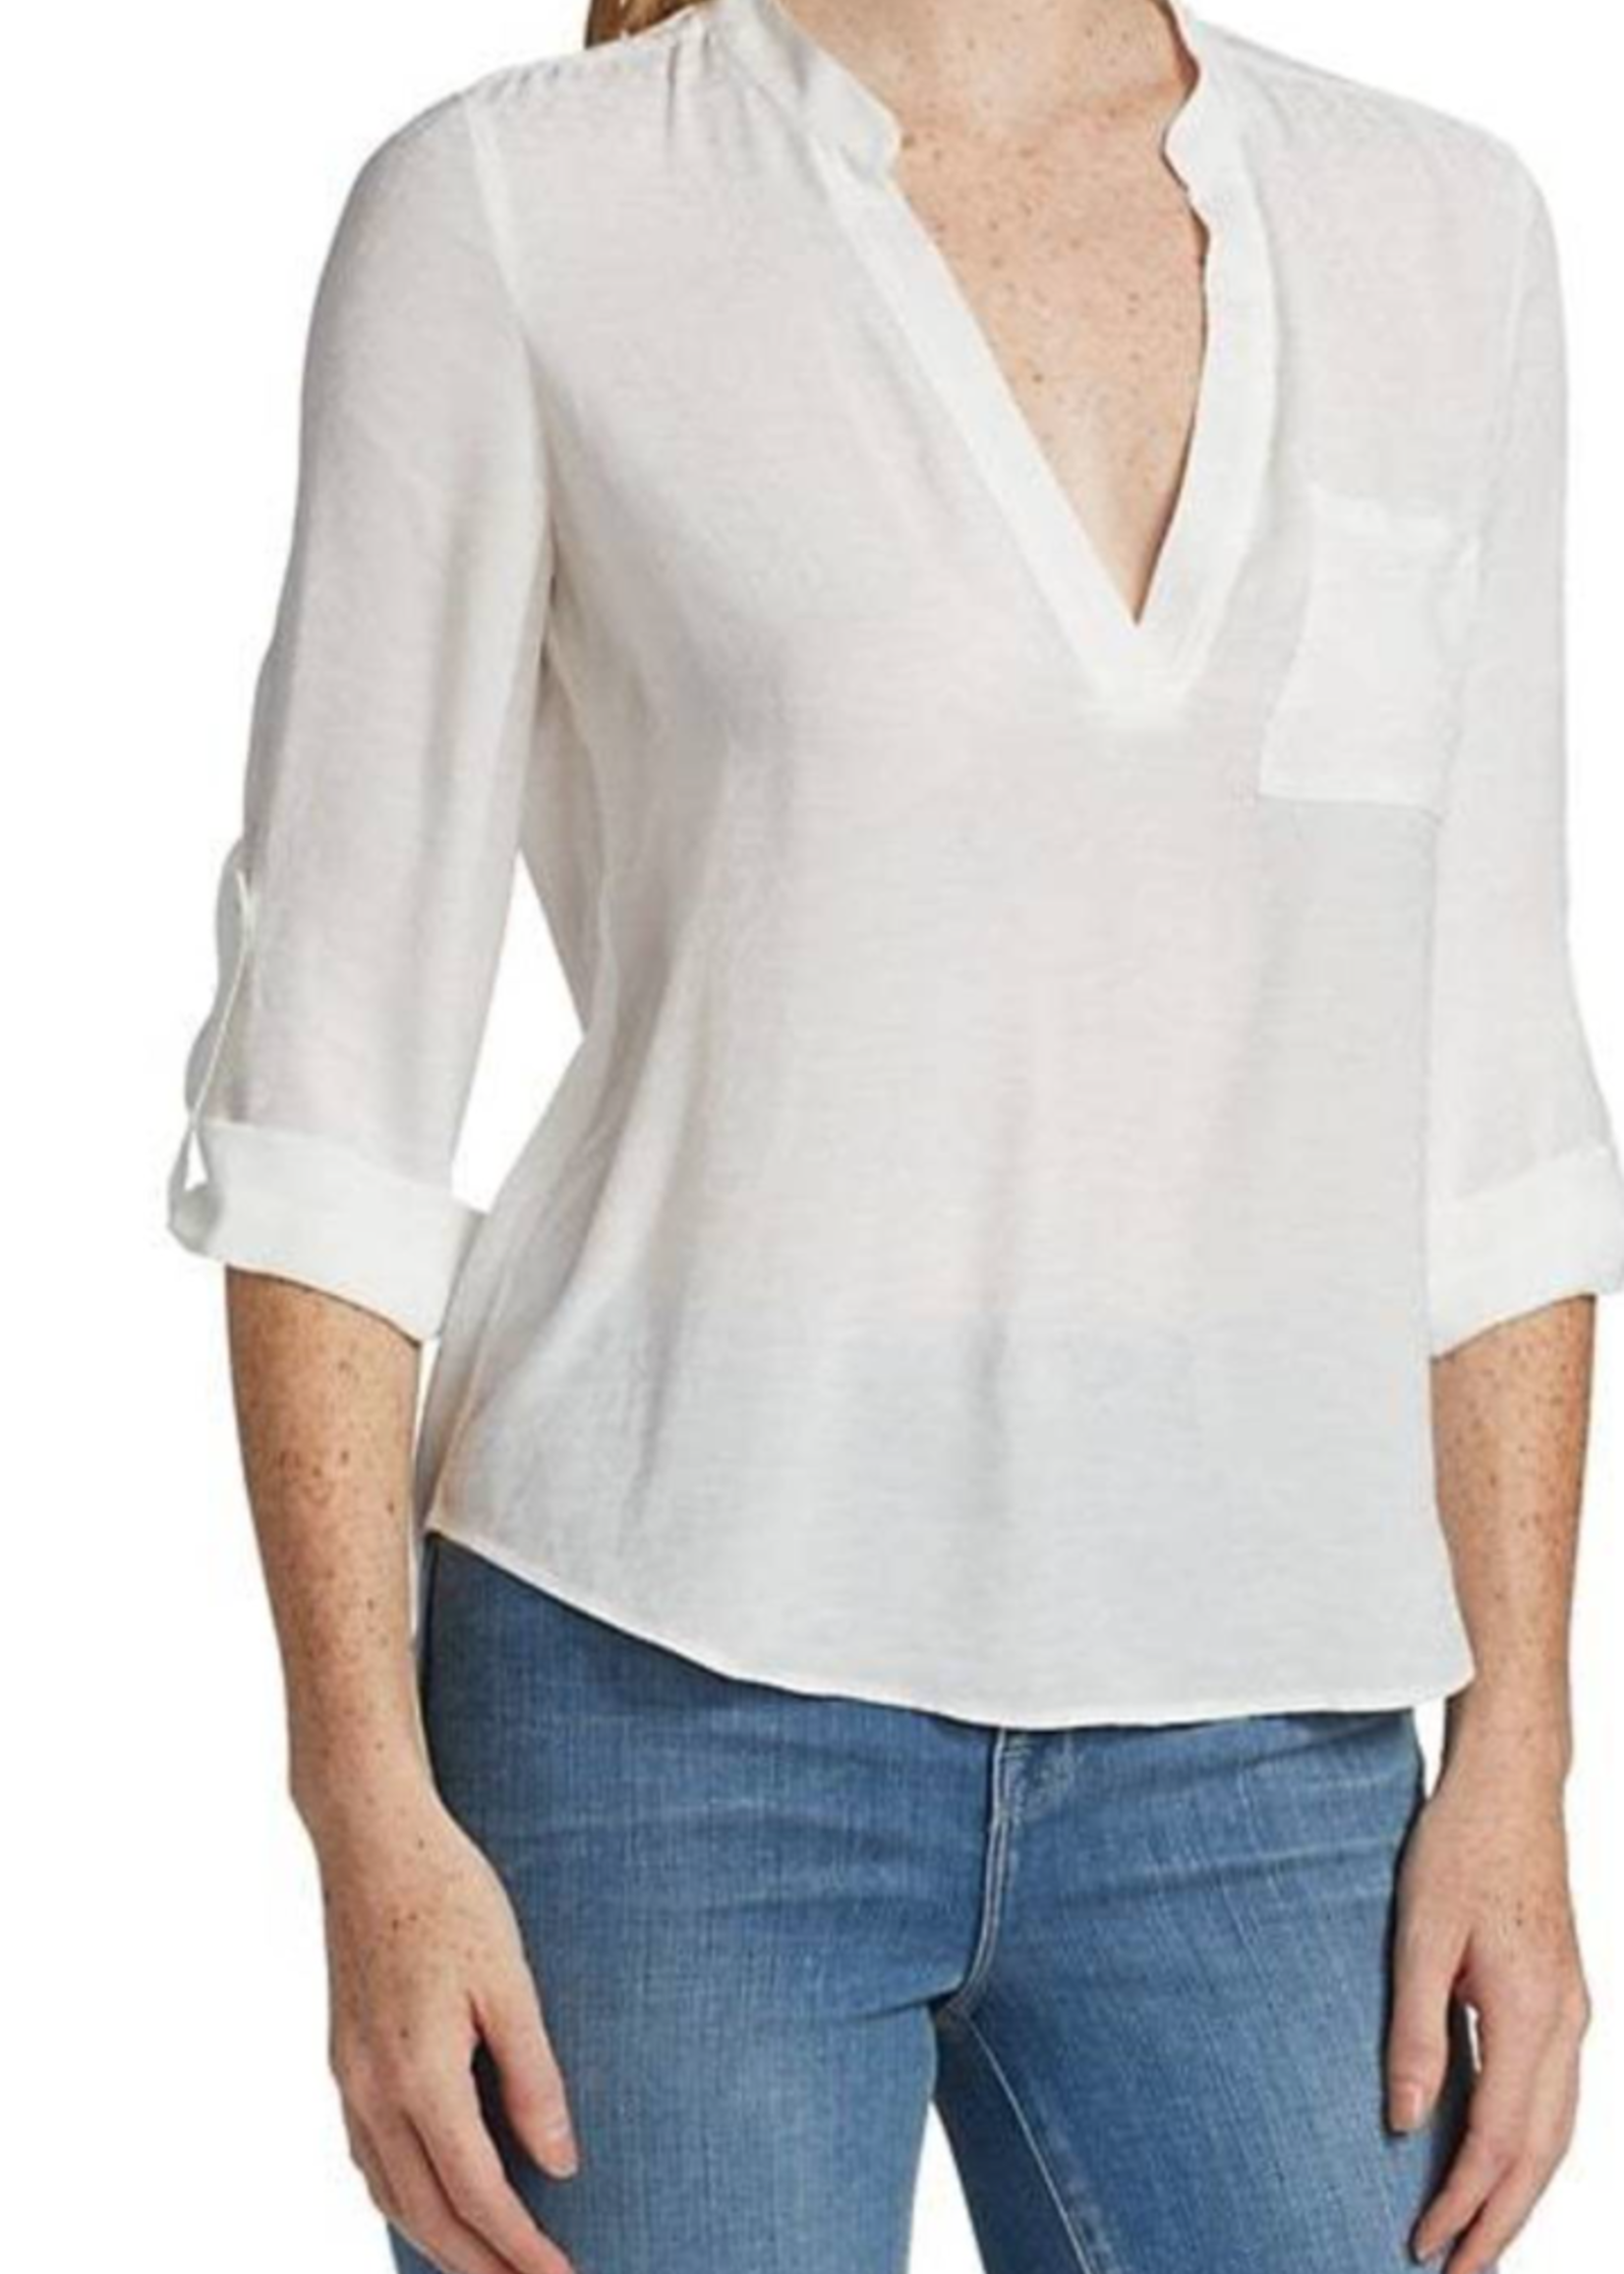 L'AGENCE CHELSEA BLOUSE IVORY 5/21